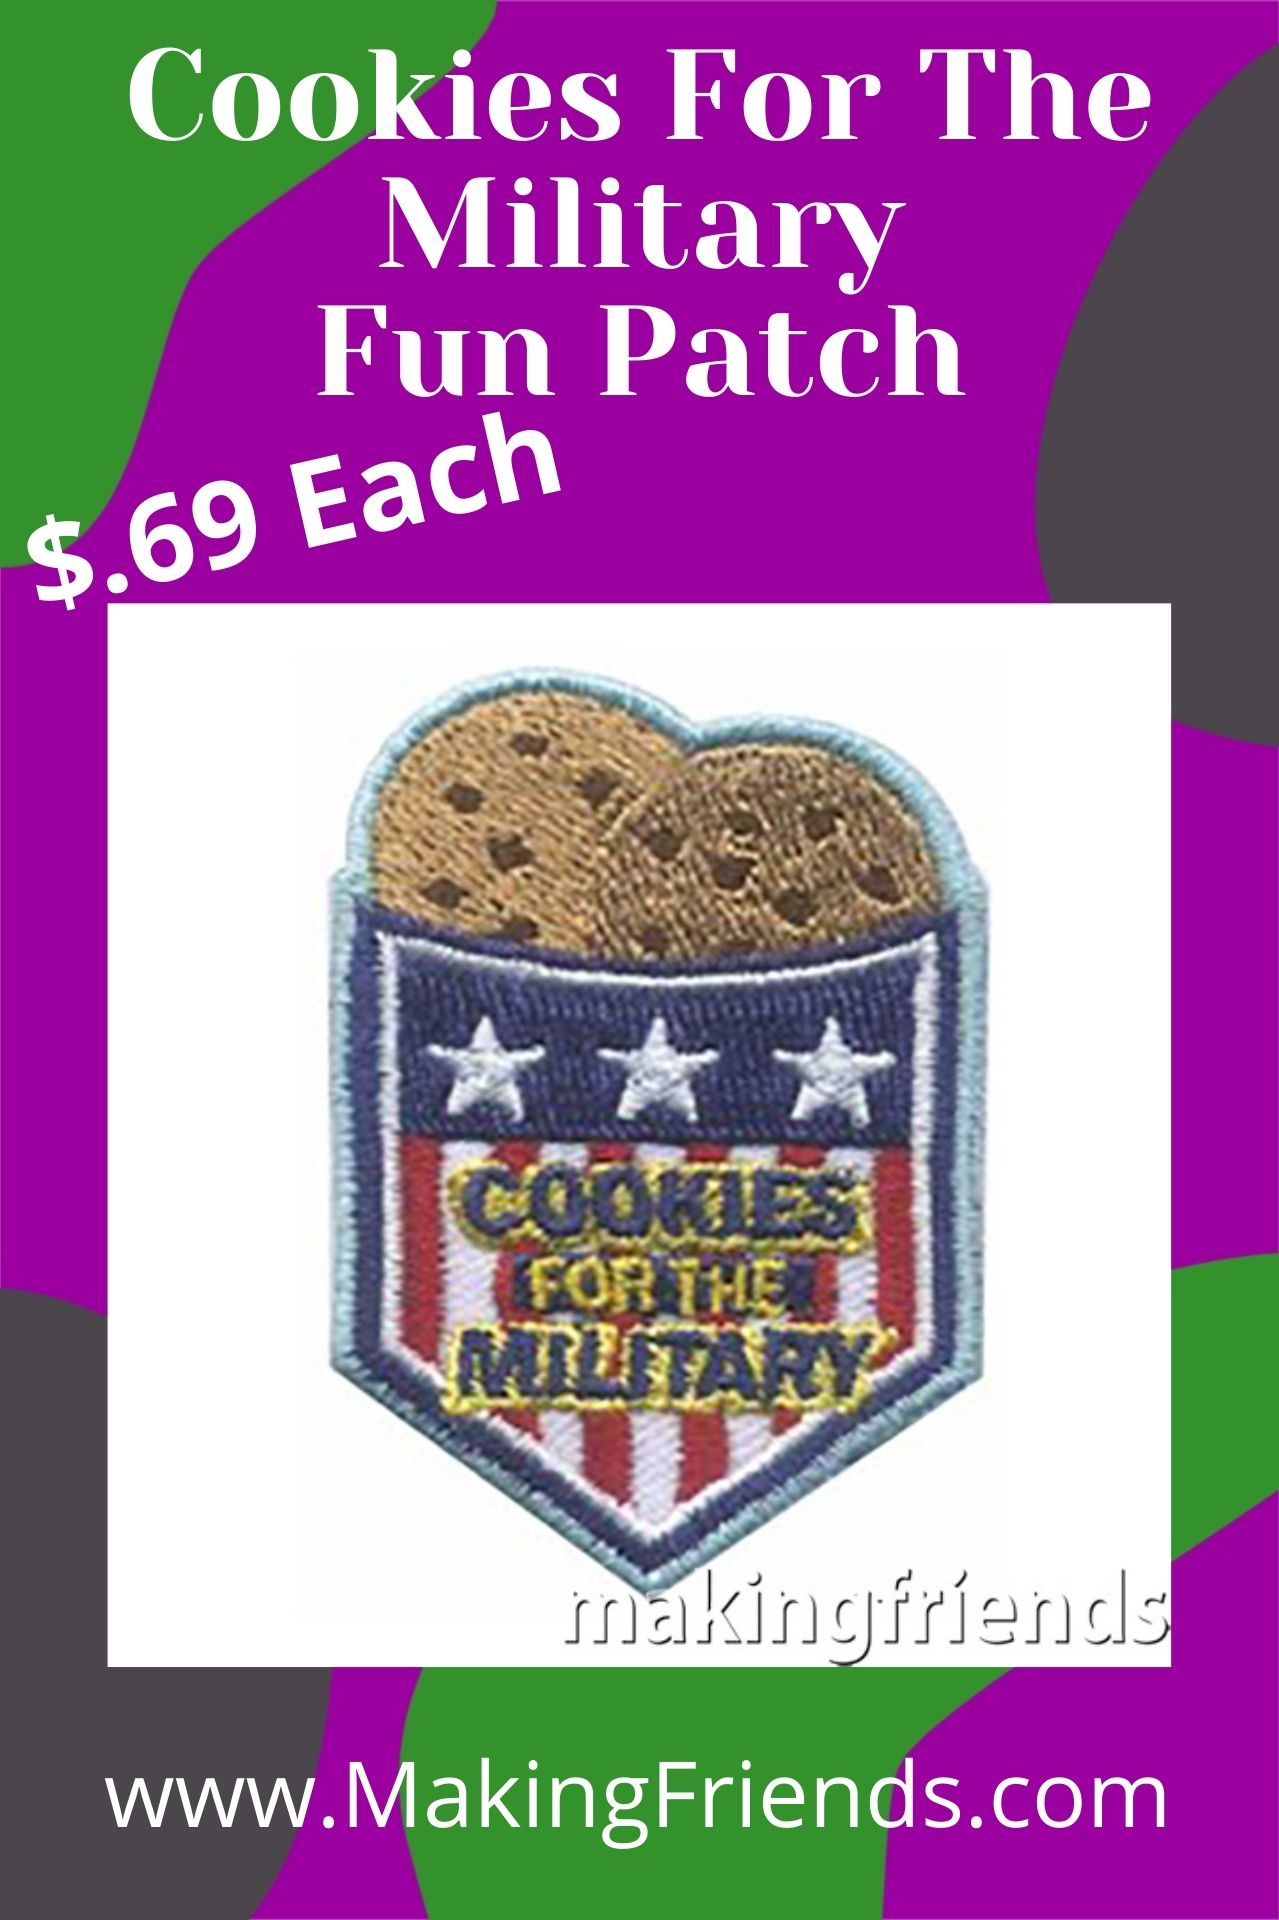 Help our deployed Military troops have a bit of home by collecting donated cookie boxes to send them! This patch is only $.69 each with free shipping available! #makingfriends #military #deployed #cookiesforthemilitary #gscookies #girlscouts #girlscoutcookies #communityservice via @gsleader411